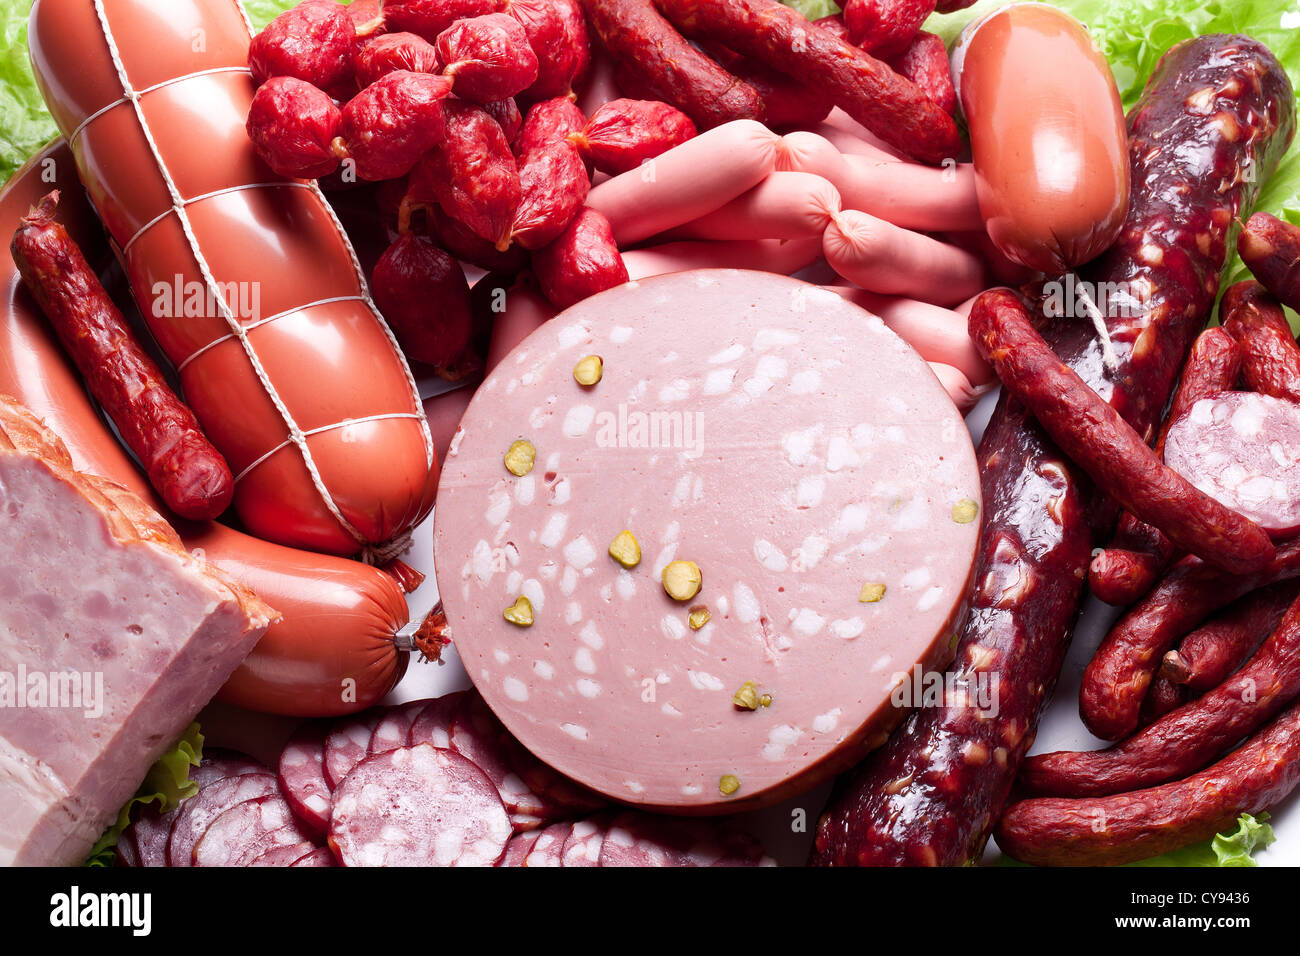 Meat and sausages on lettuce leaves. - Stock Image